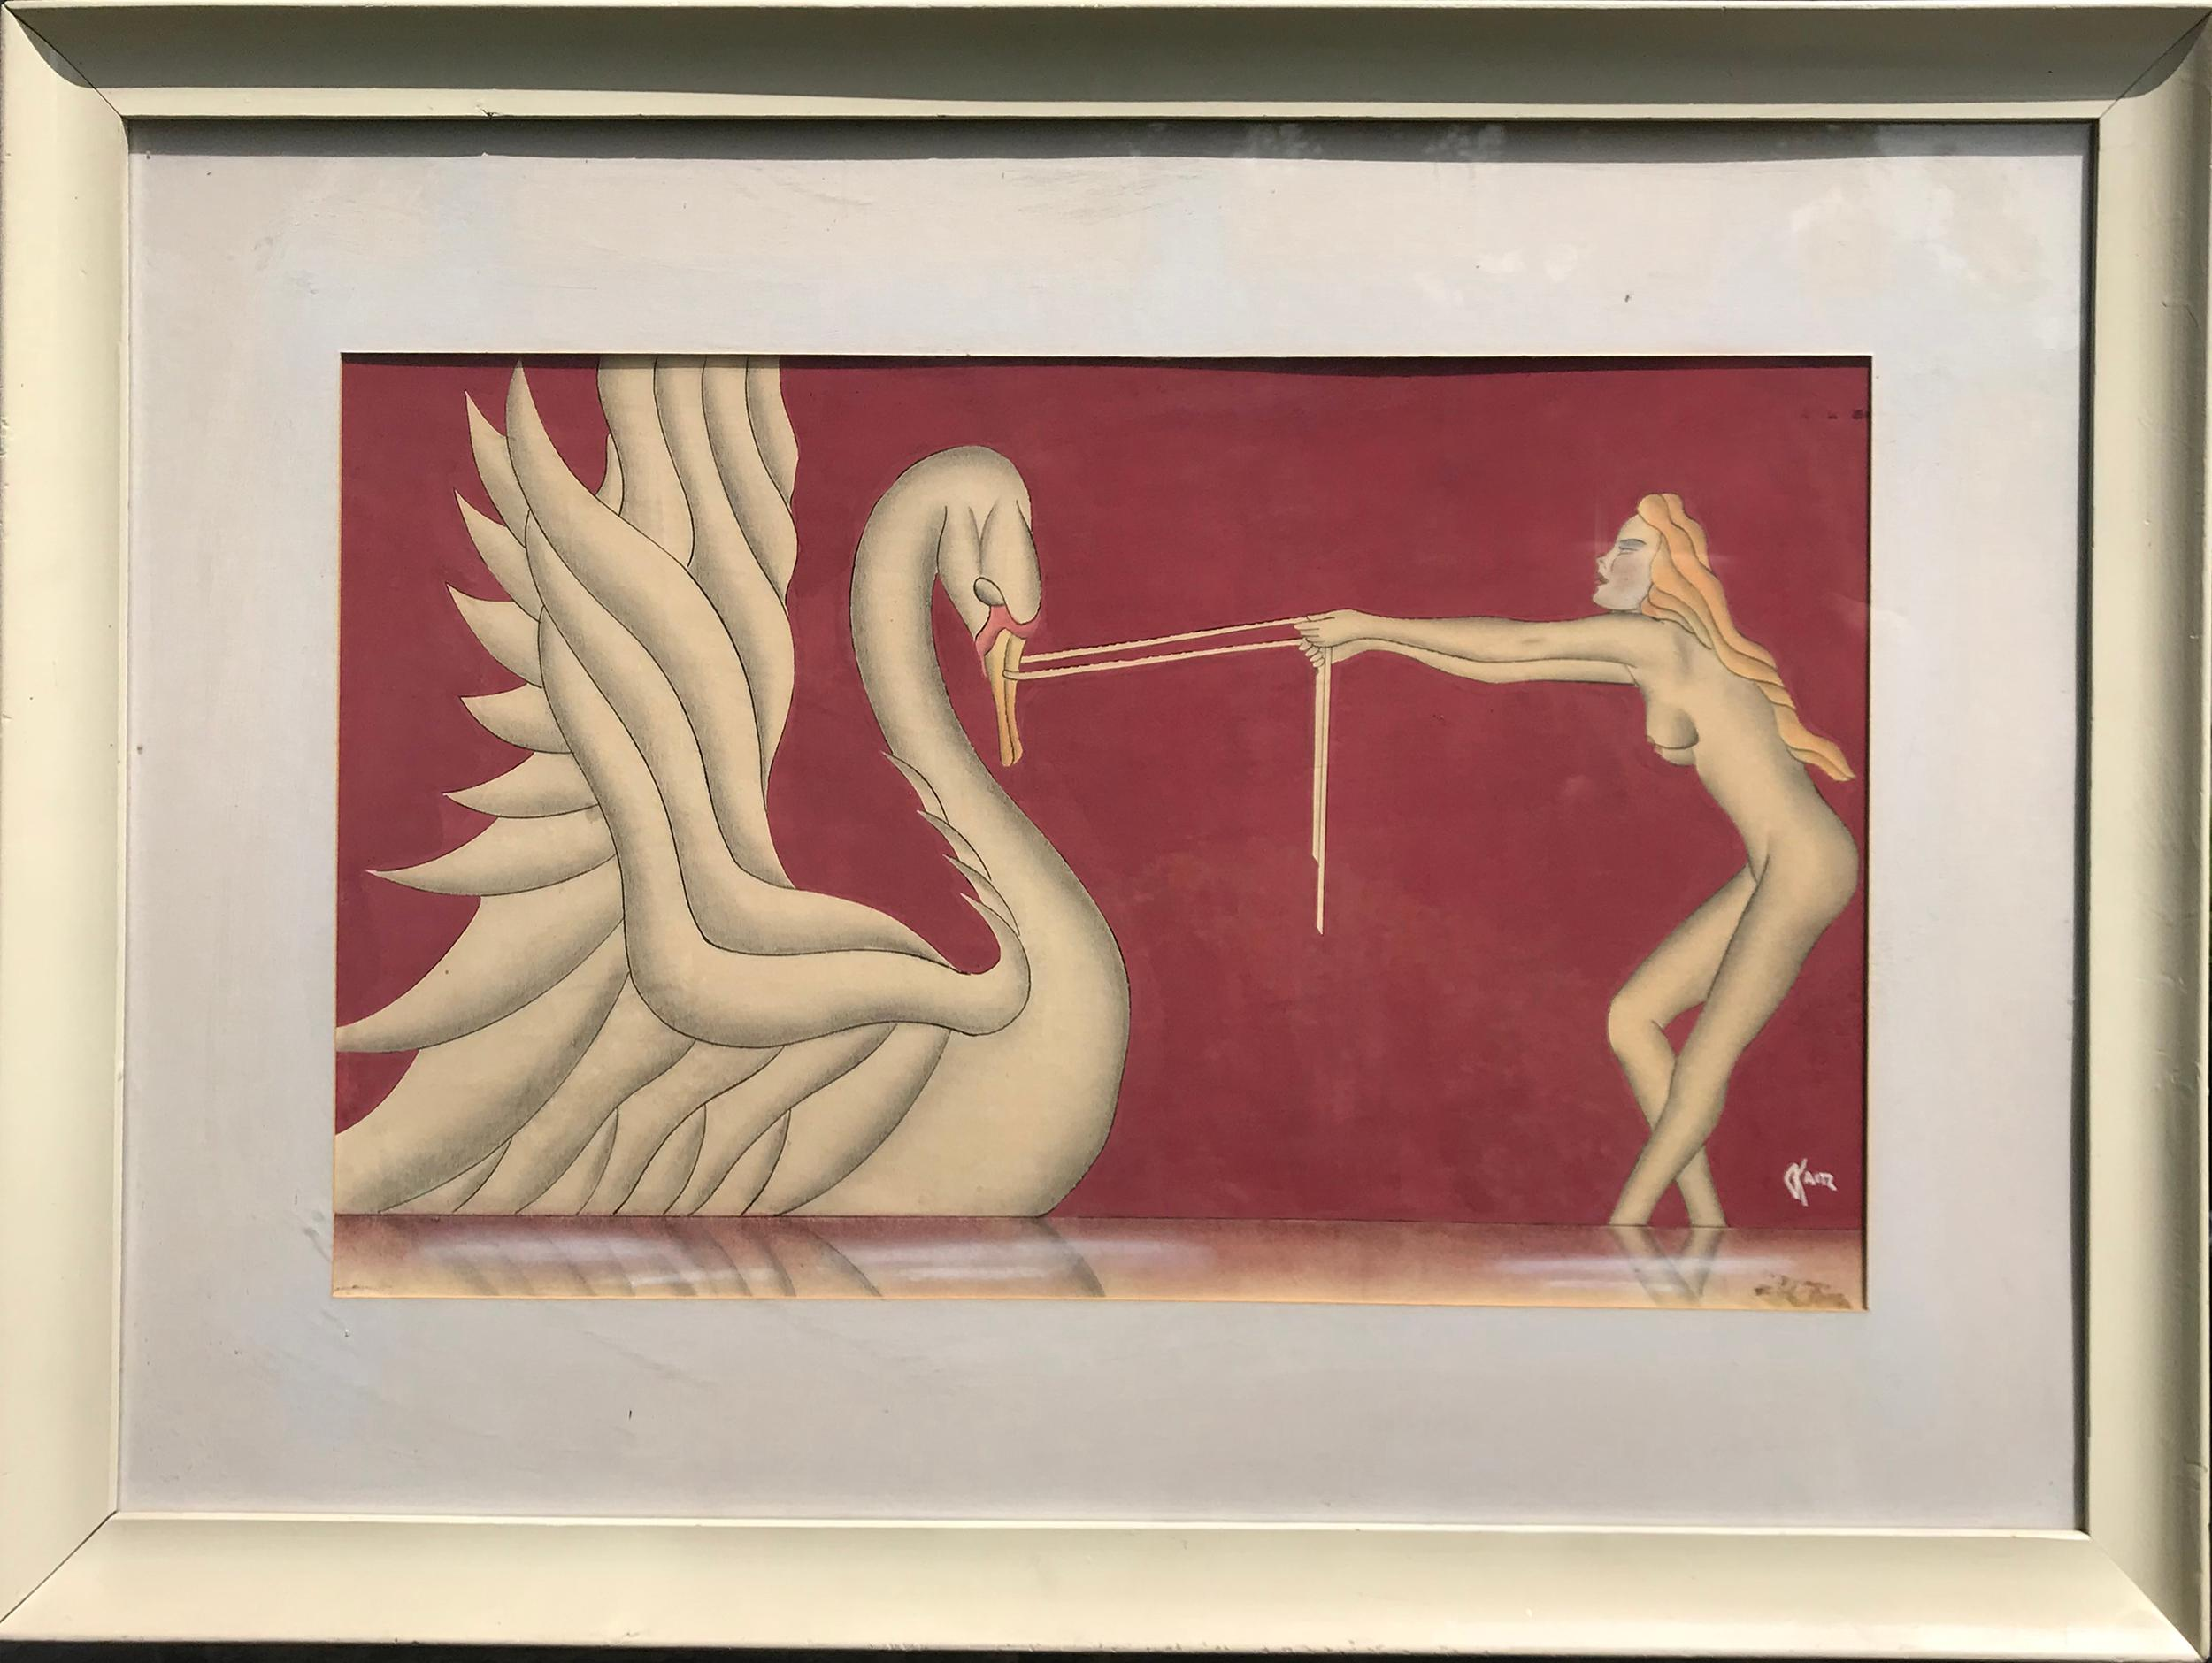 Gustav Kaitz, Leda and the Swan, Gouache, Ink and Watercolor Painting